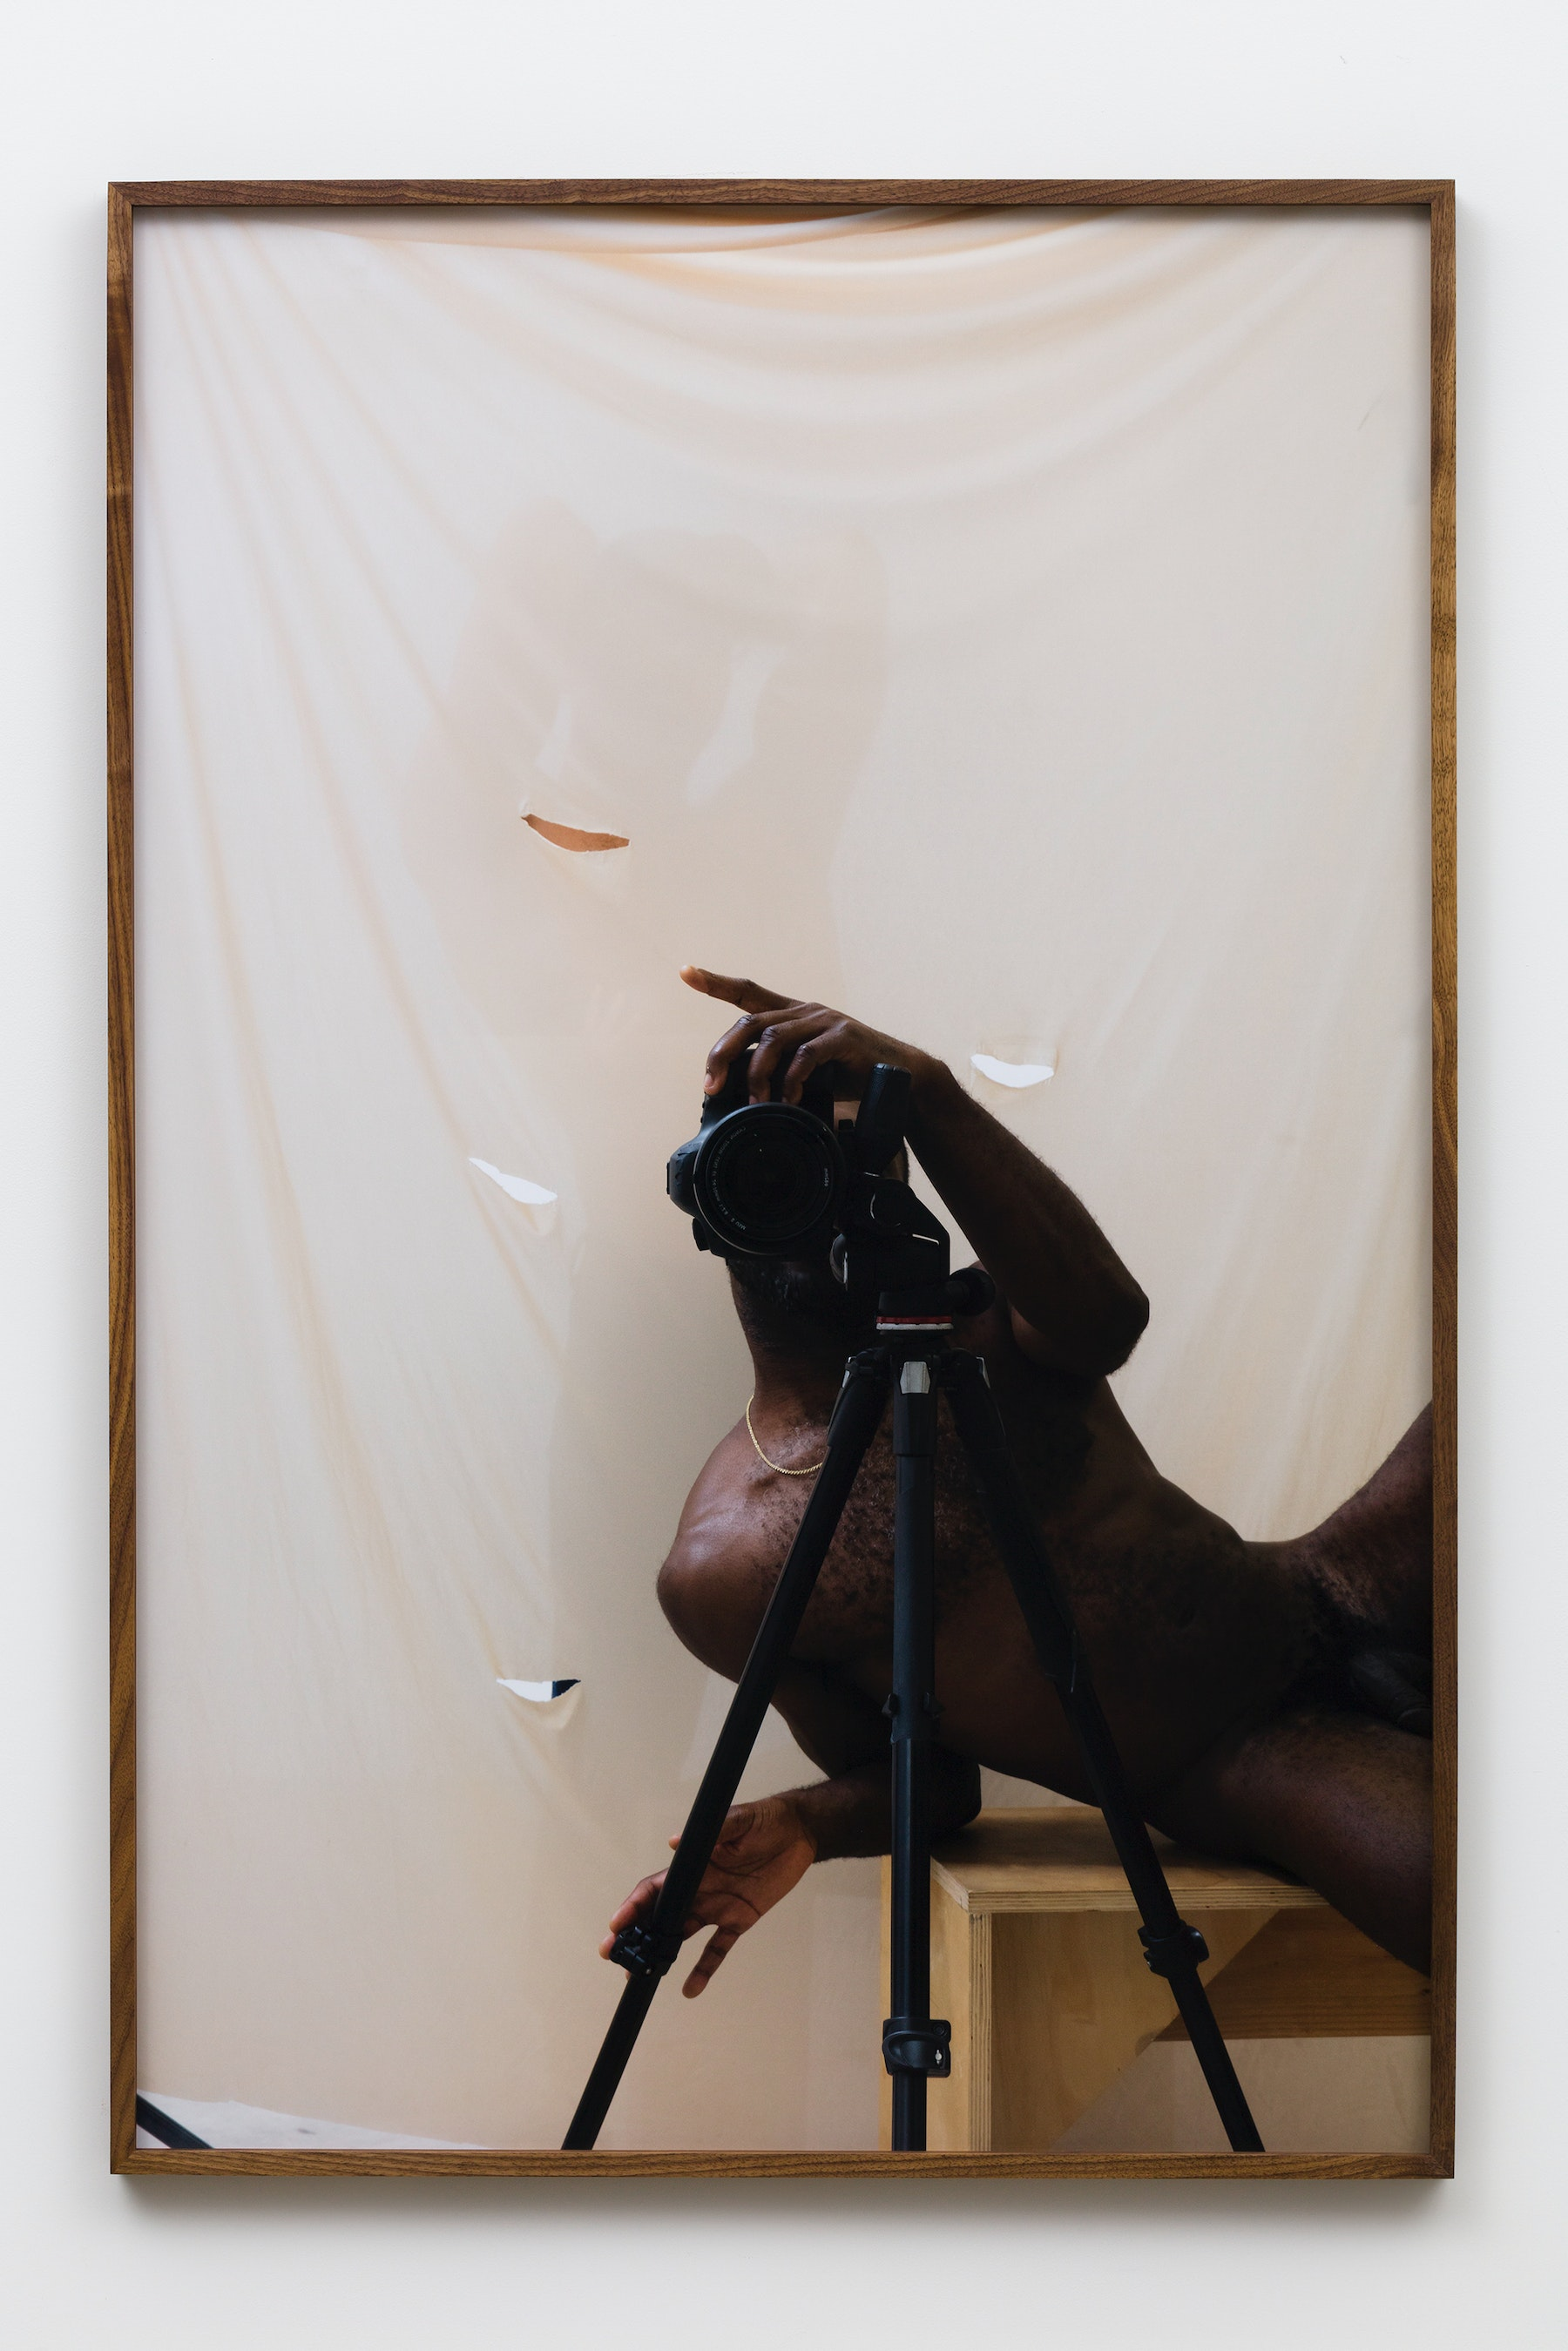 """Paul Mpagi Sepuya """"Screen (0X5A8328),"""" 2019 Archival pigment print 60 x 40"""" [HxW] (152.4 x 101.6 cm) Edition of 5, 2 AP Inventory #SEP655 Courtesy of the artist and Vielmetter Los Angeles Photo credit: Jeff McLane"""